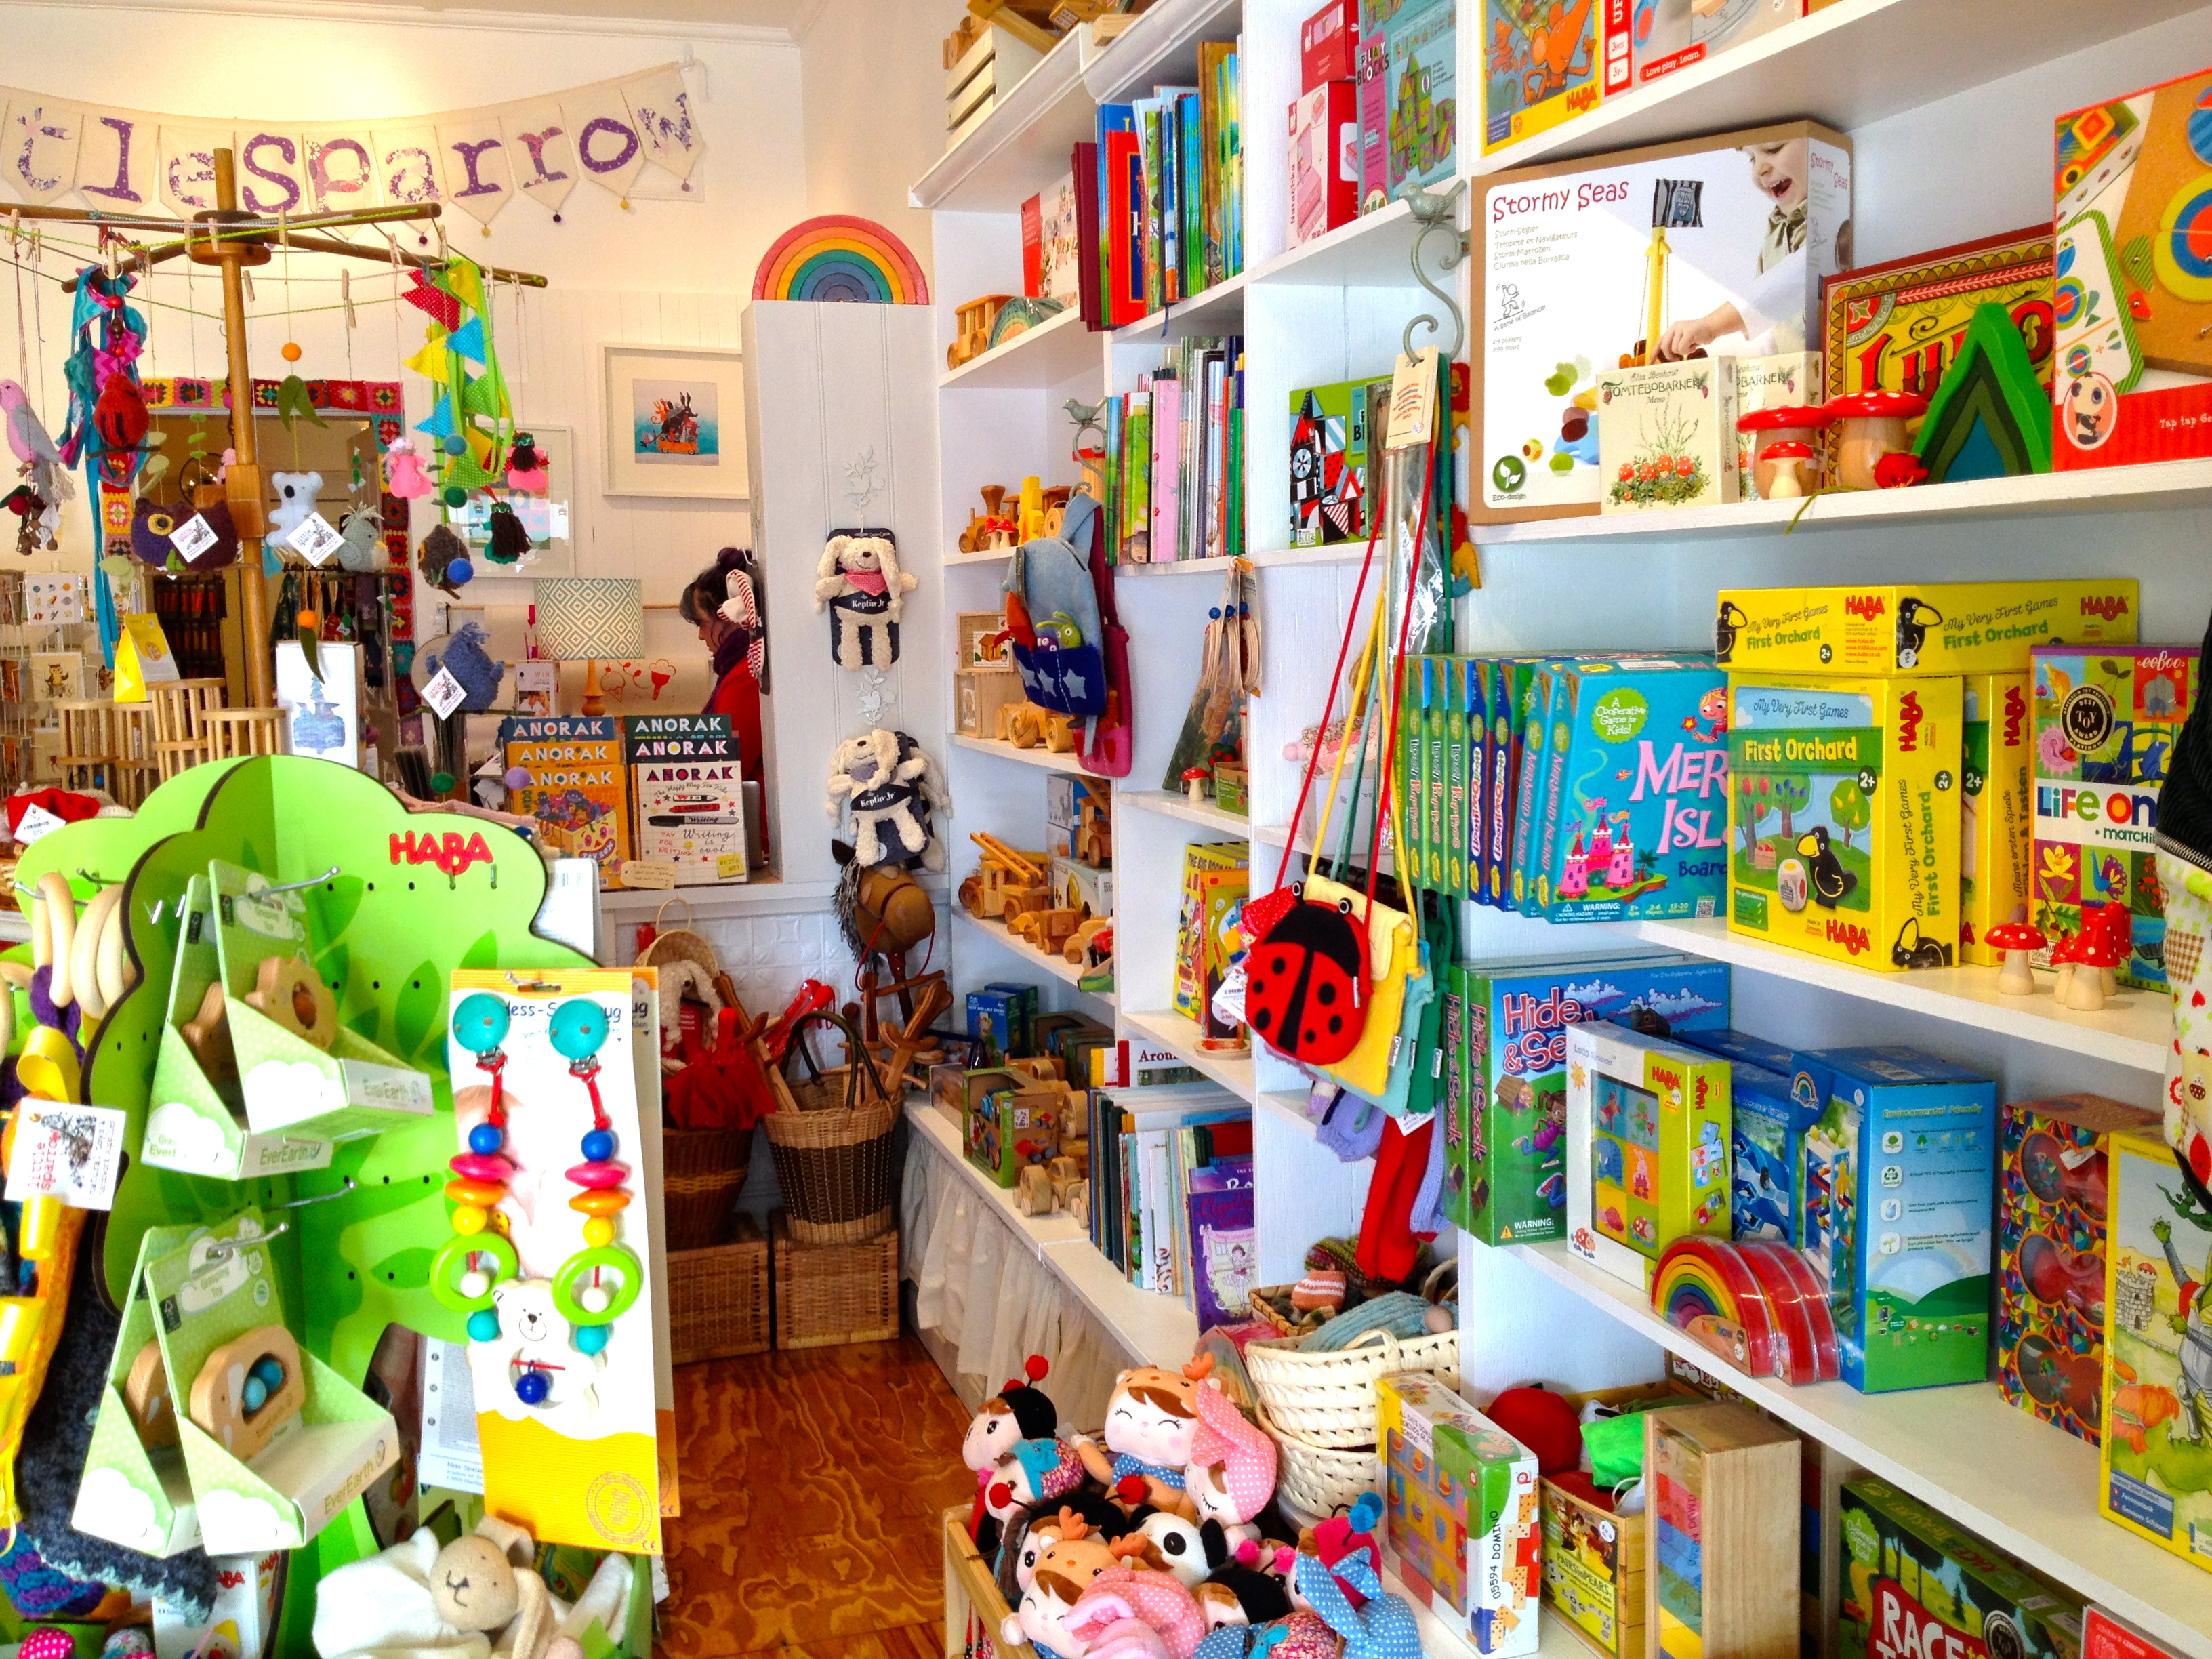 Lego Shops Adelaide Little Sparrow Natural Toy Shop And Craft Classes Melbourne